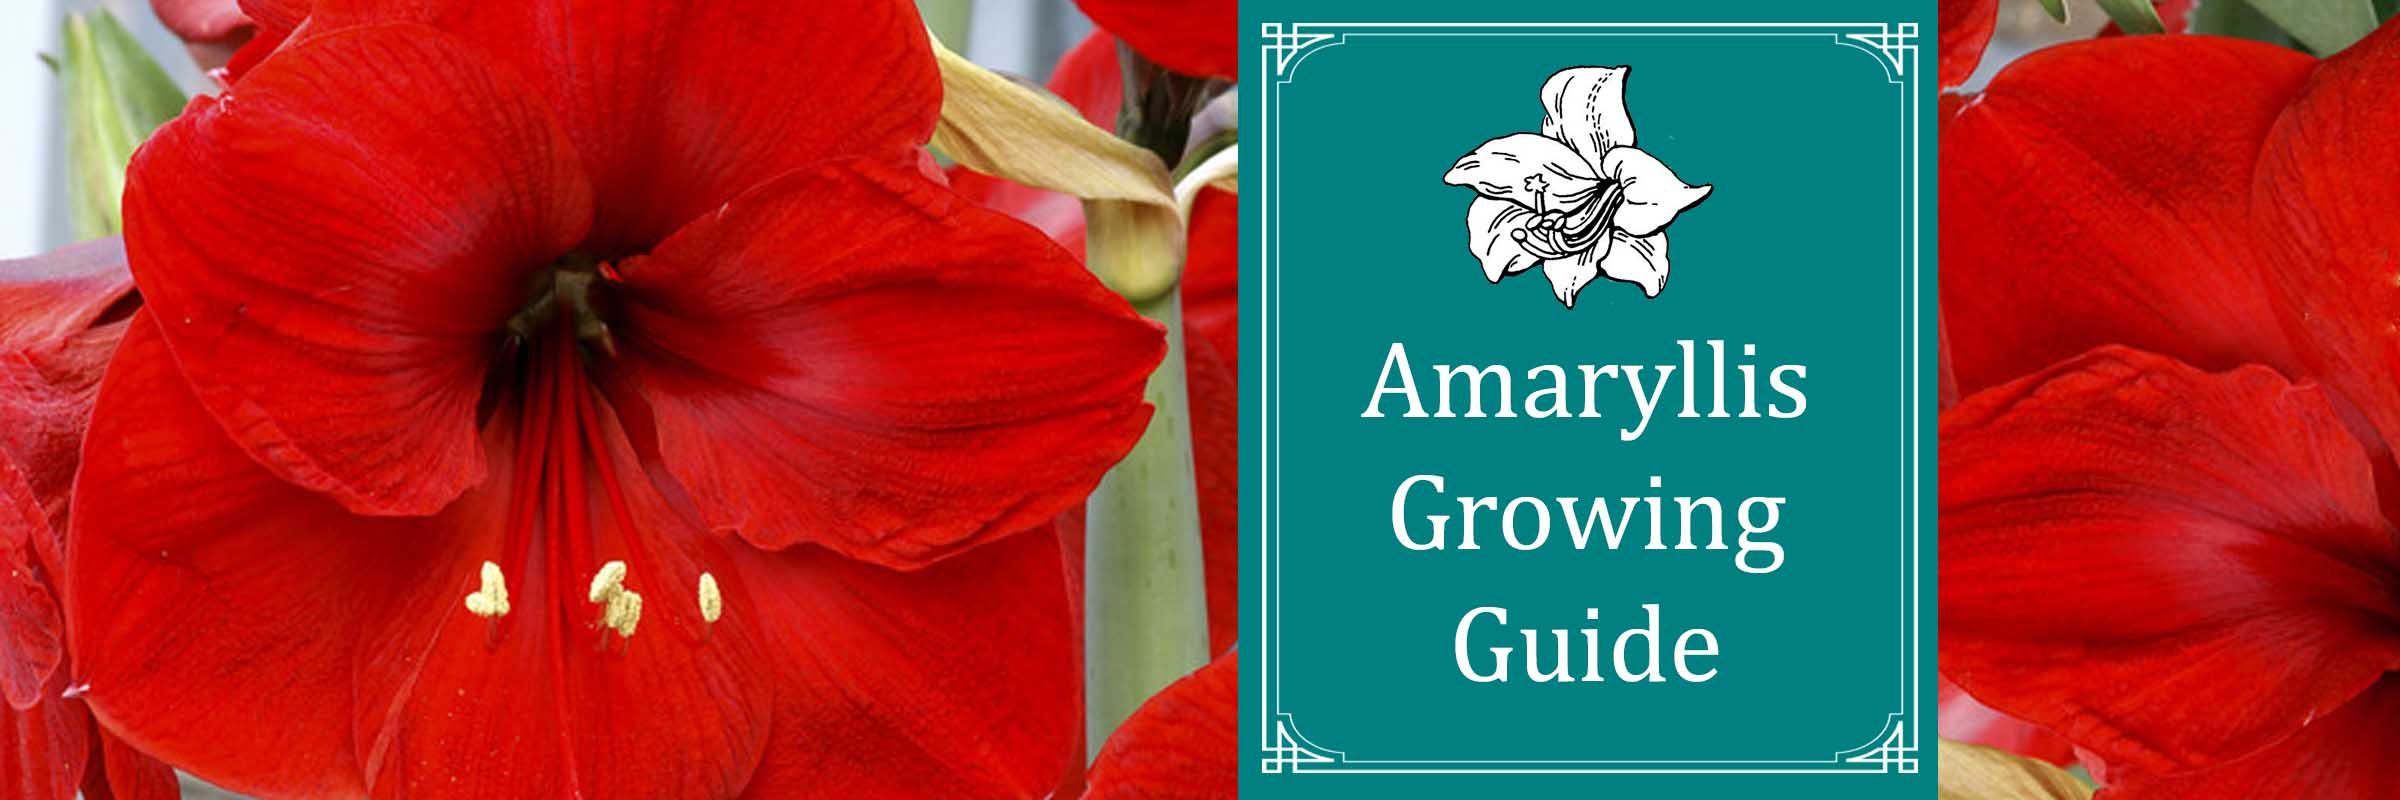 Amaryllis Growing Guide